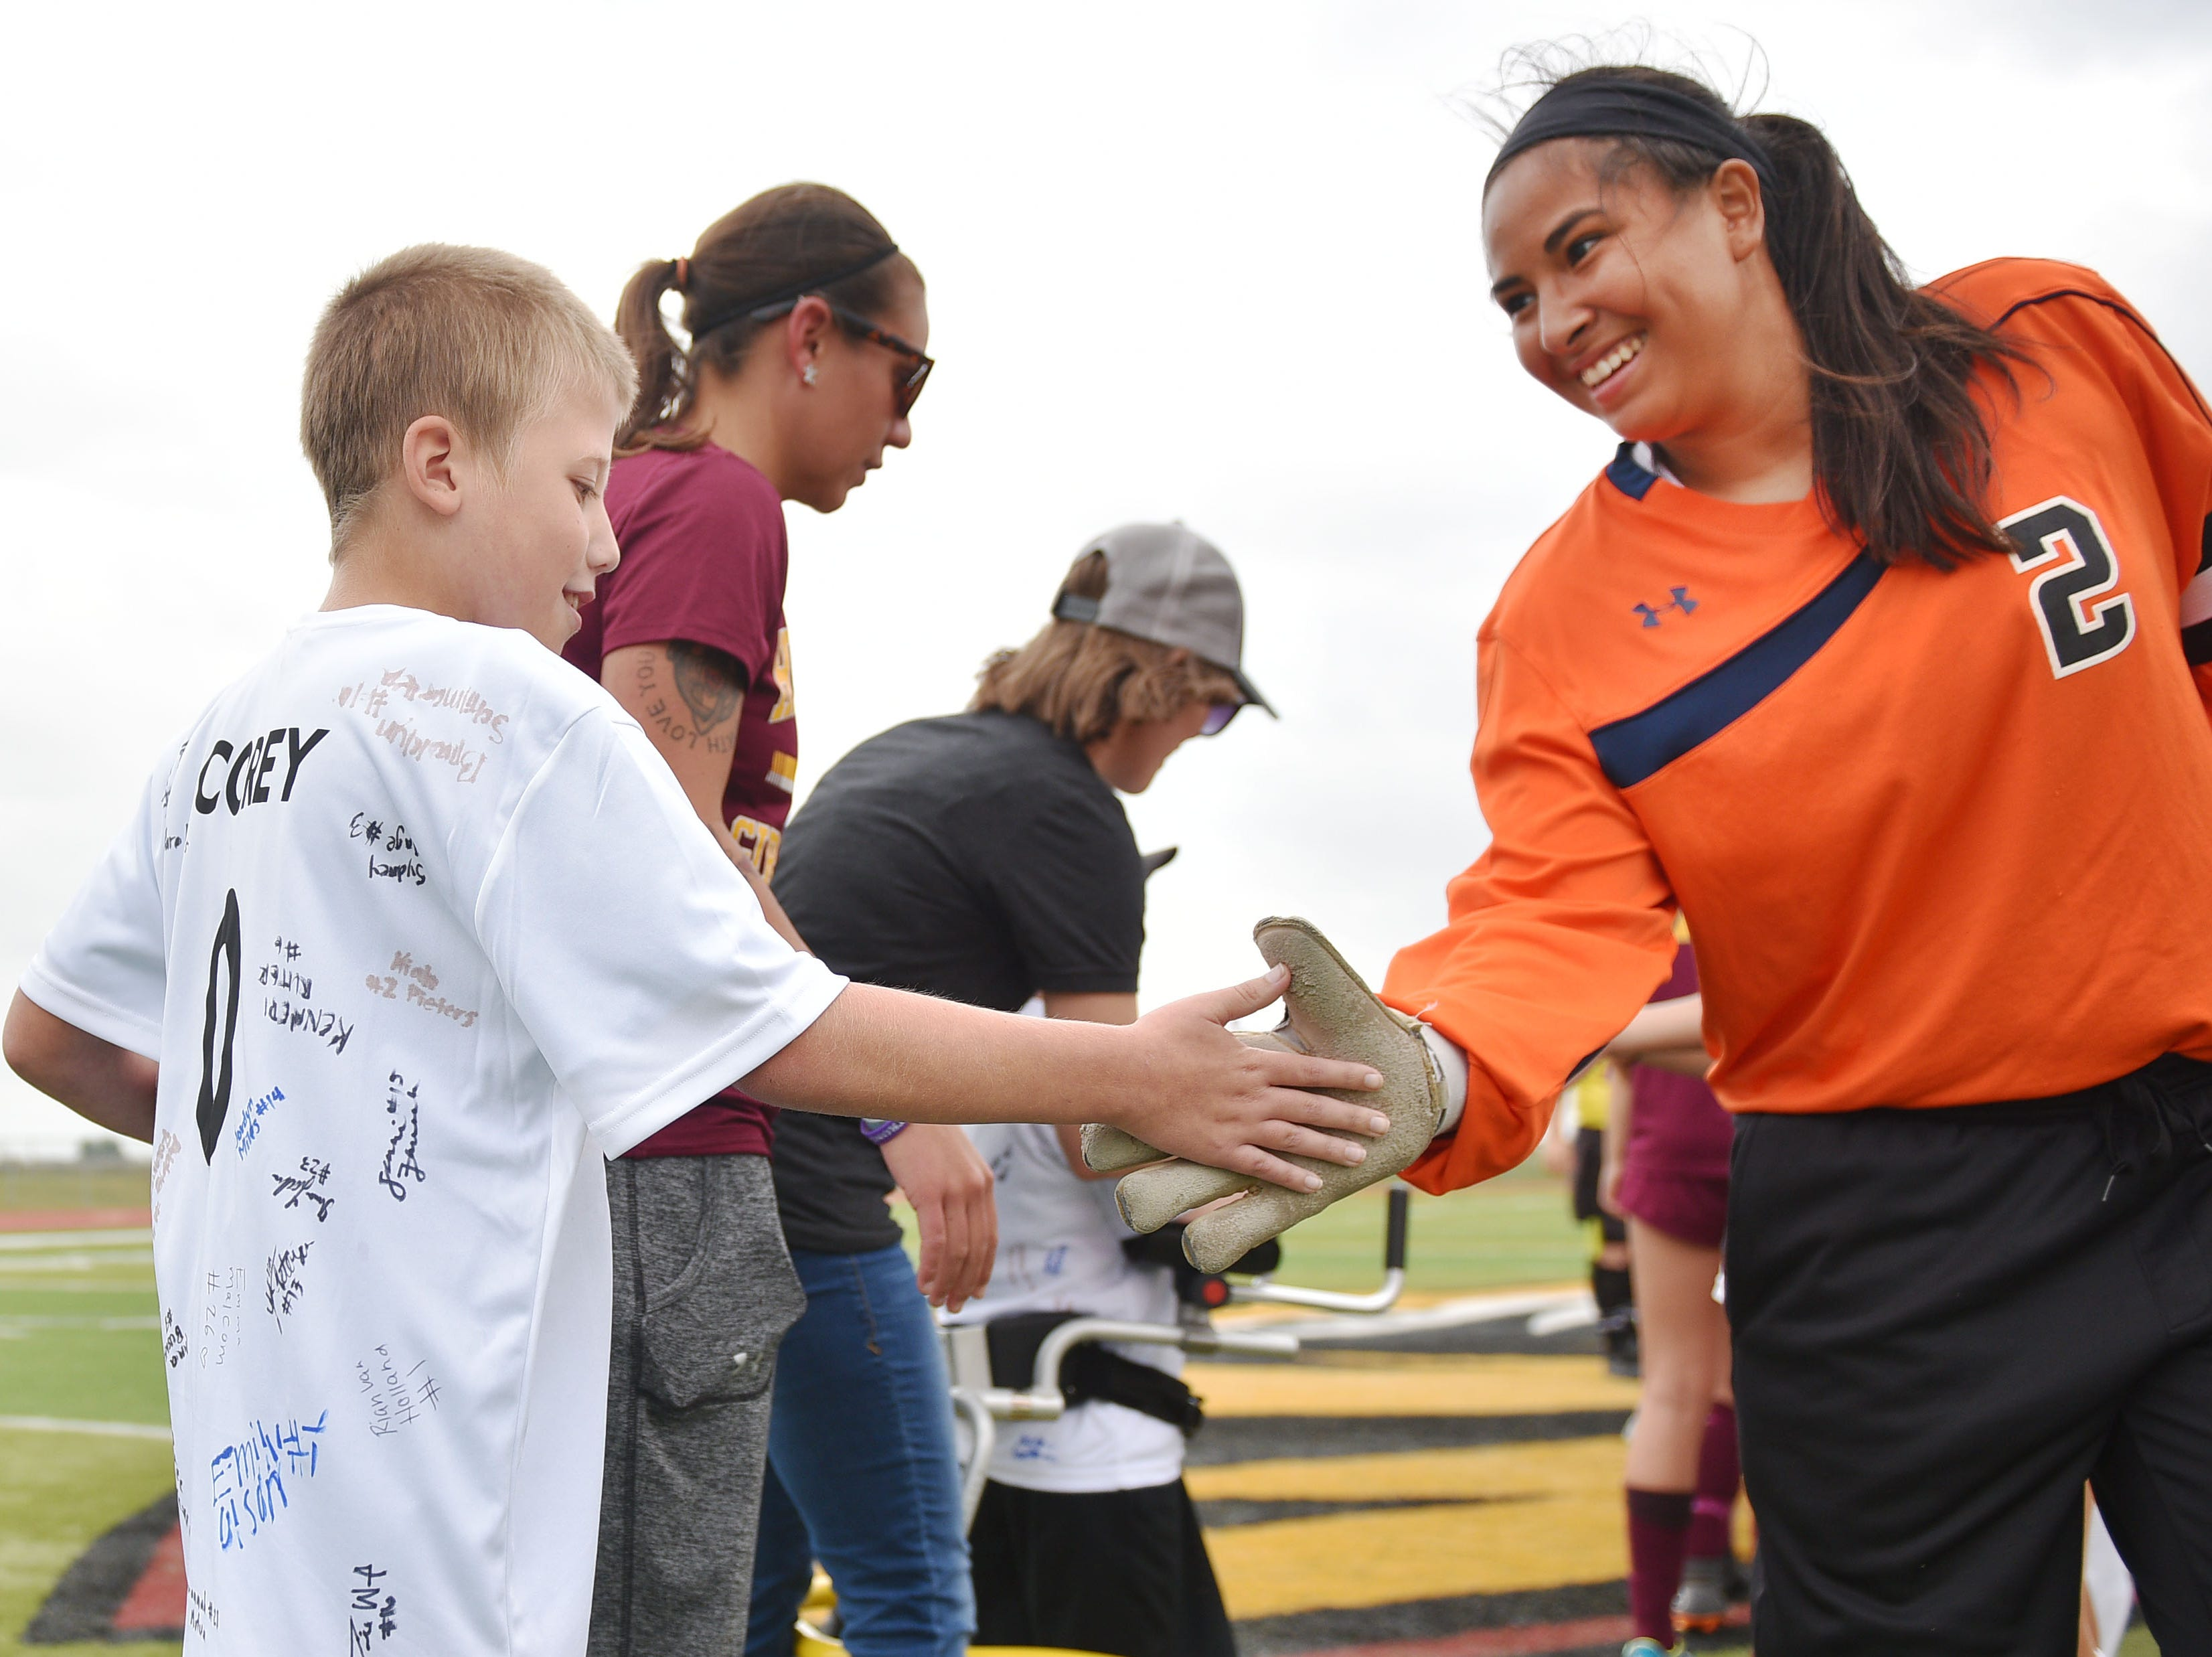 Corey Surikov high fives Hurron's goalie Fatima Reyes before the game against Hurron Thursday, Sept. 13, at Harrisburg. Corey Surikov and Grant Hamilton were named Players of the Game.